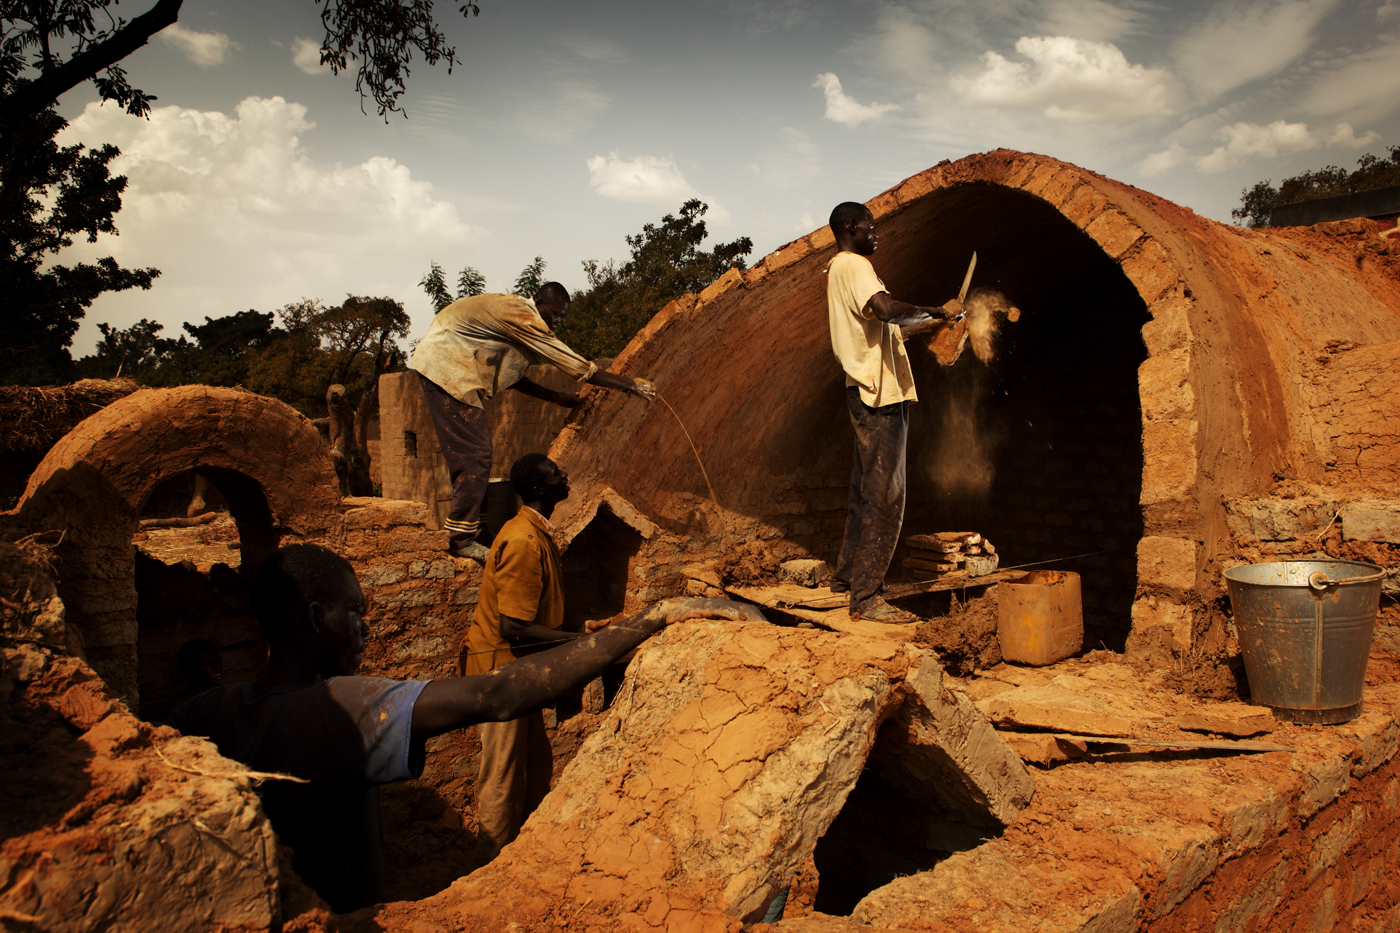 Working_together_on_construction_of_a_house_-_Earth_Roofs_in_the_Sahel_Program.jpg